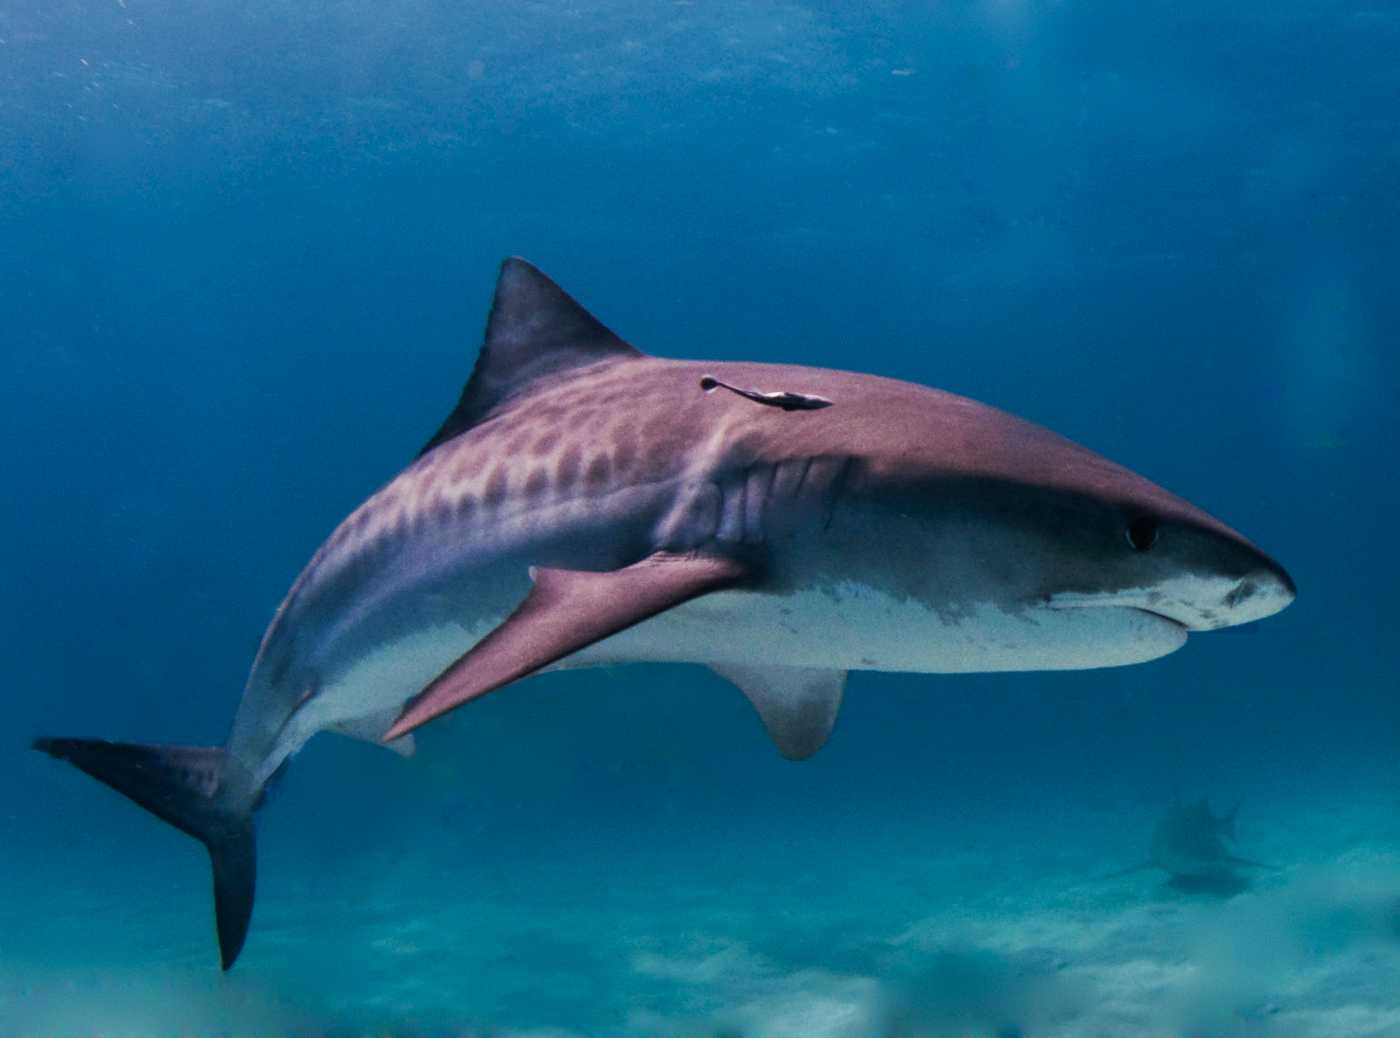 Tackling the myths and misunderstandings of shark attacks